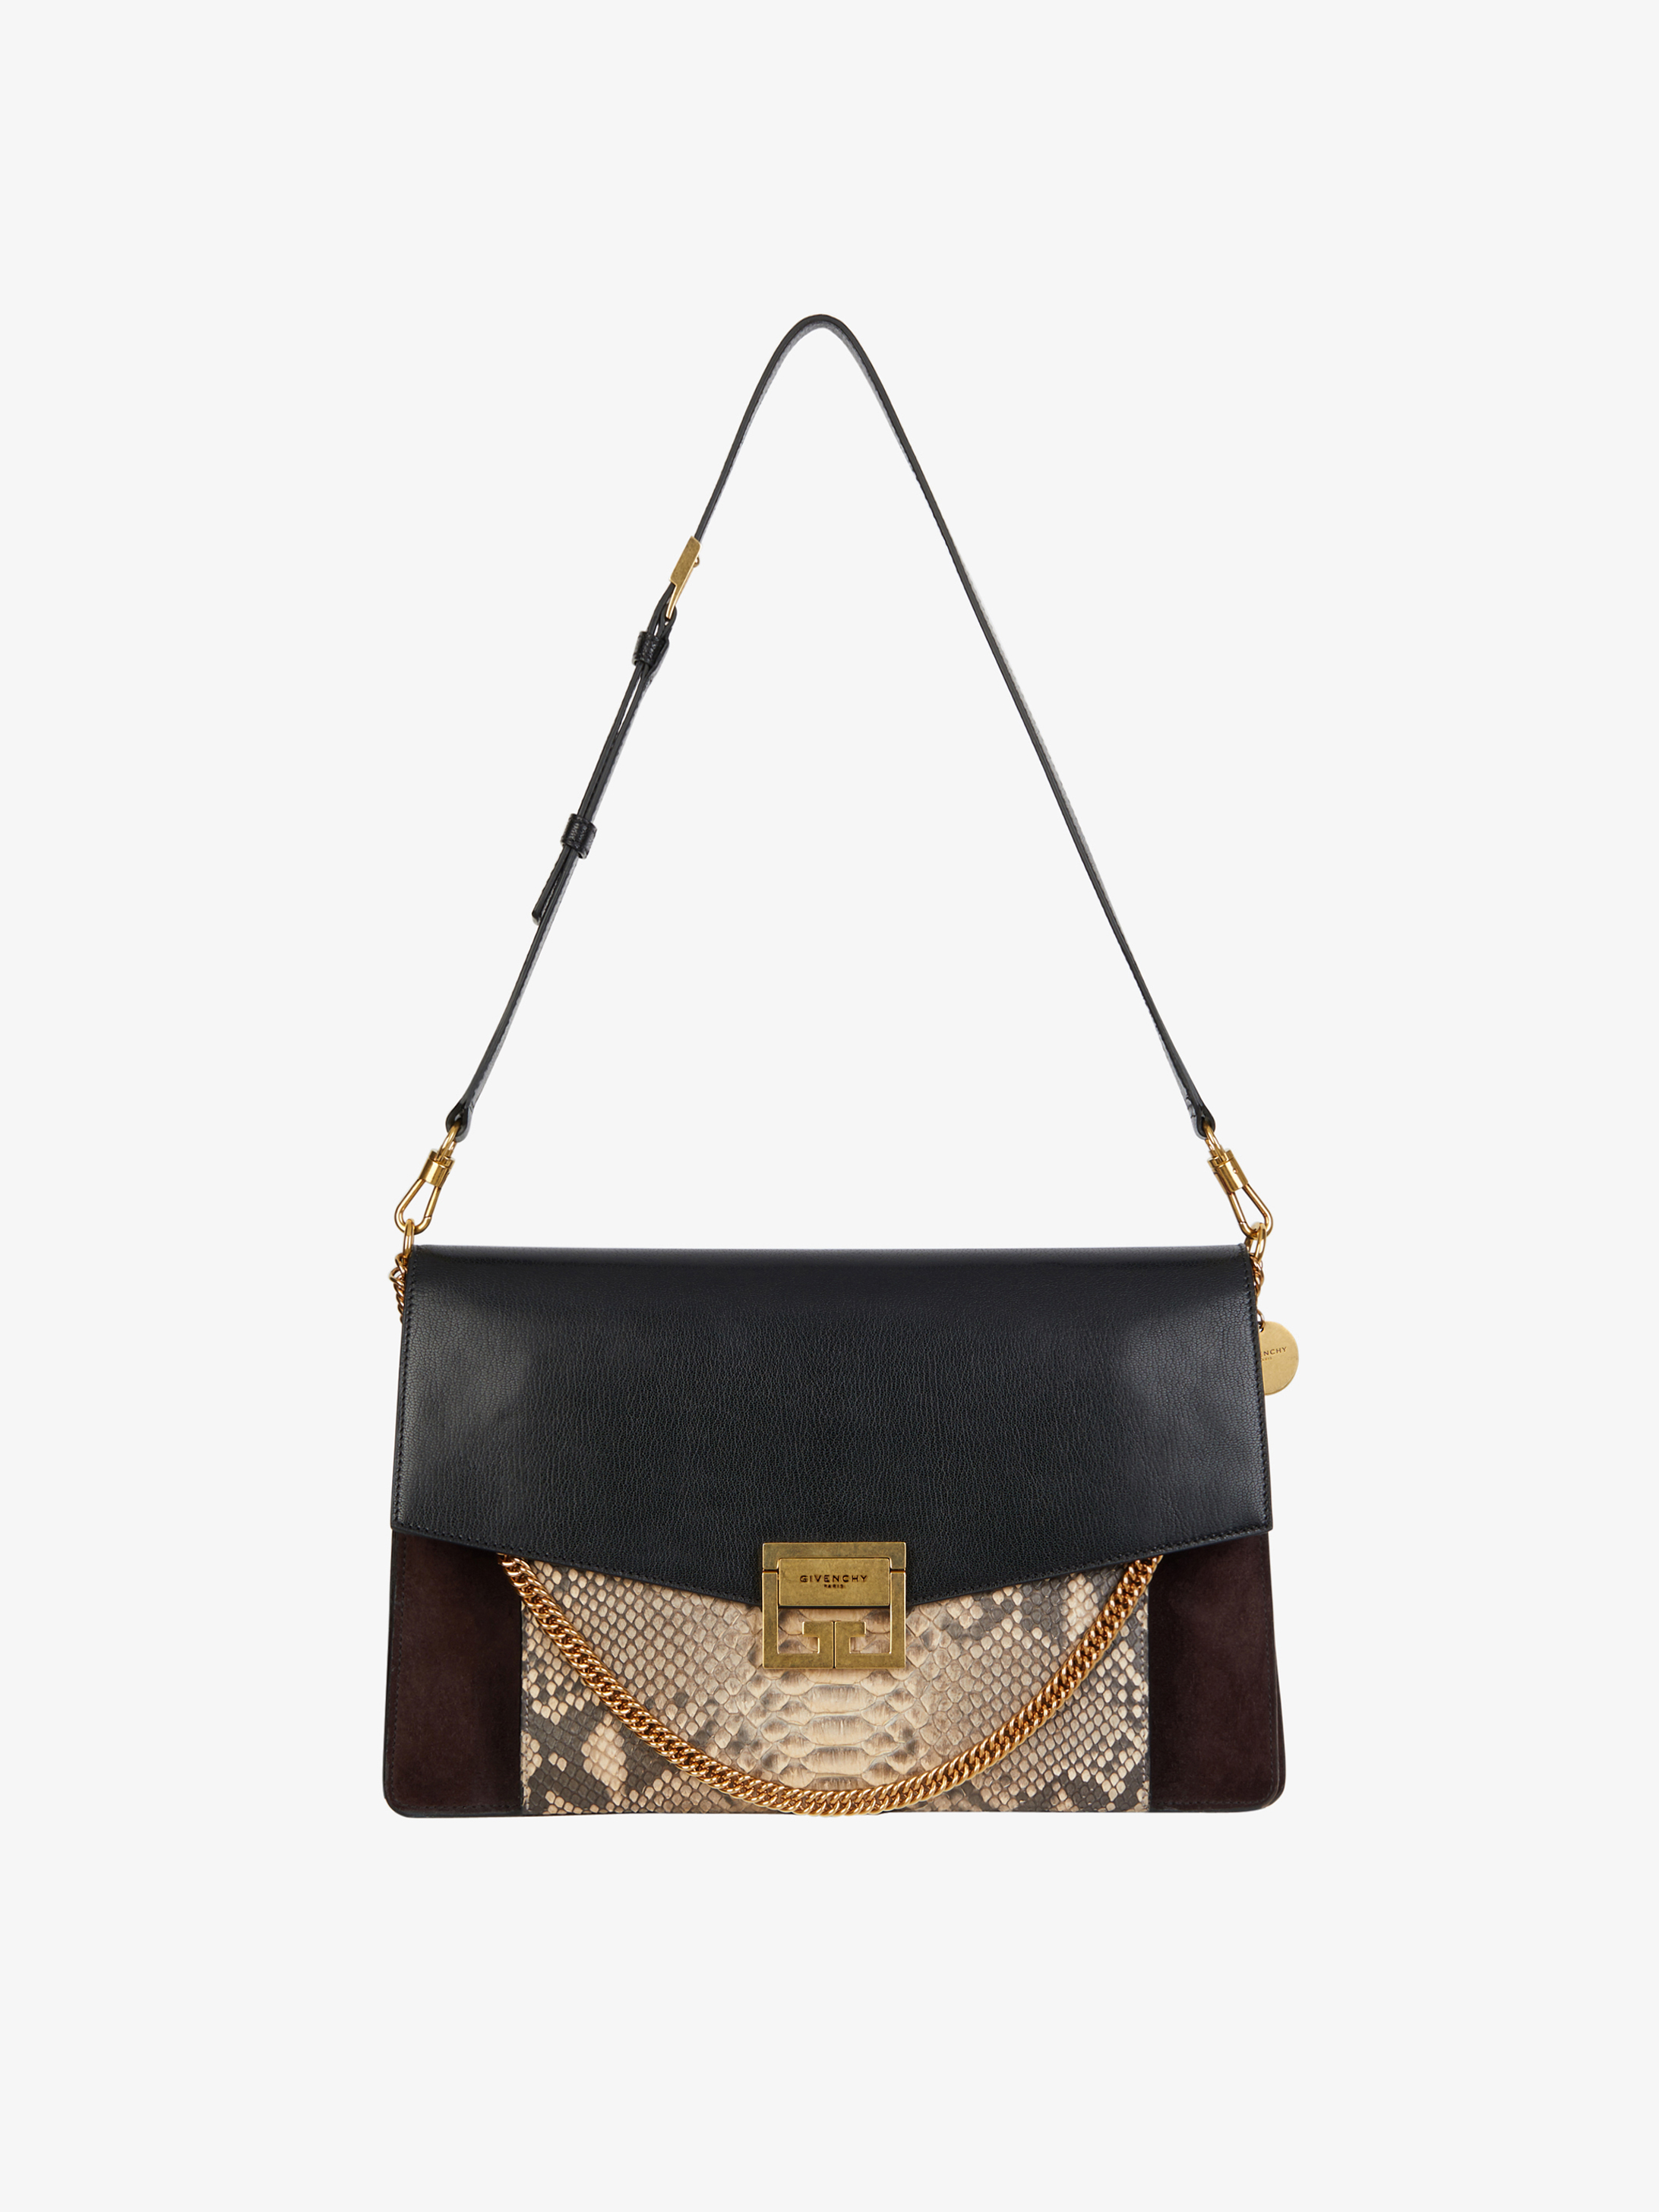 Large GV3 bag in leather, suede and python